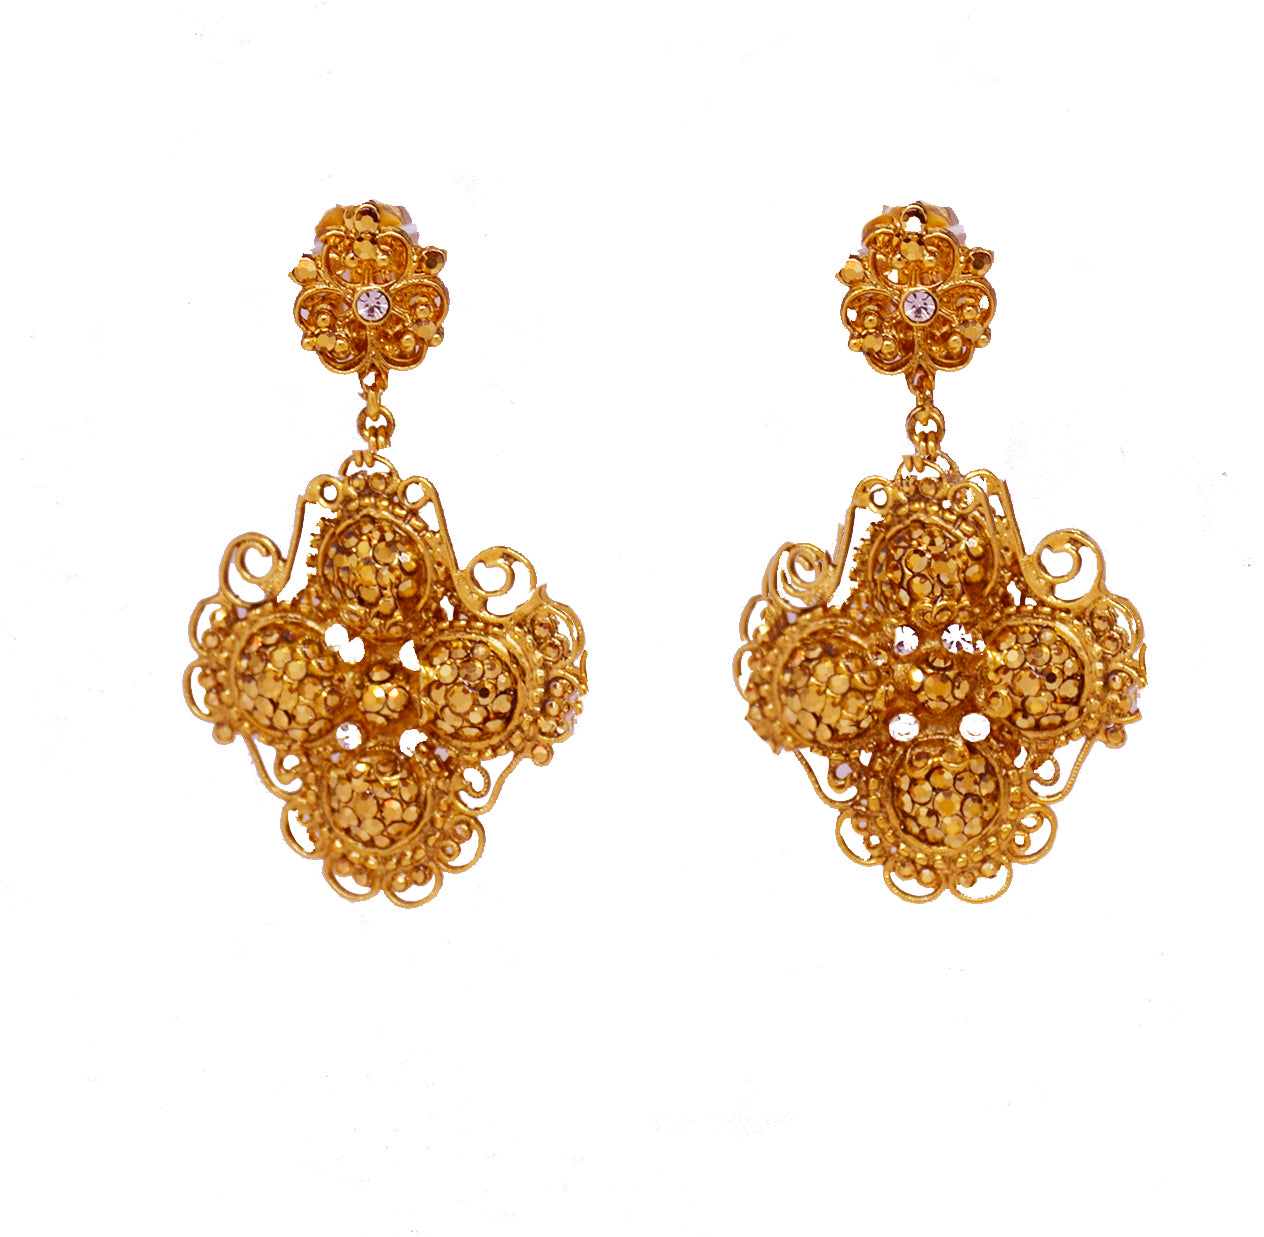 131  Gold filigree cross drop clip earring with crystal stones